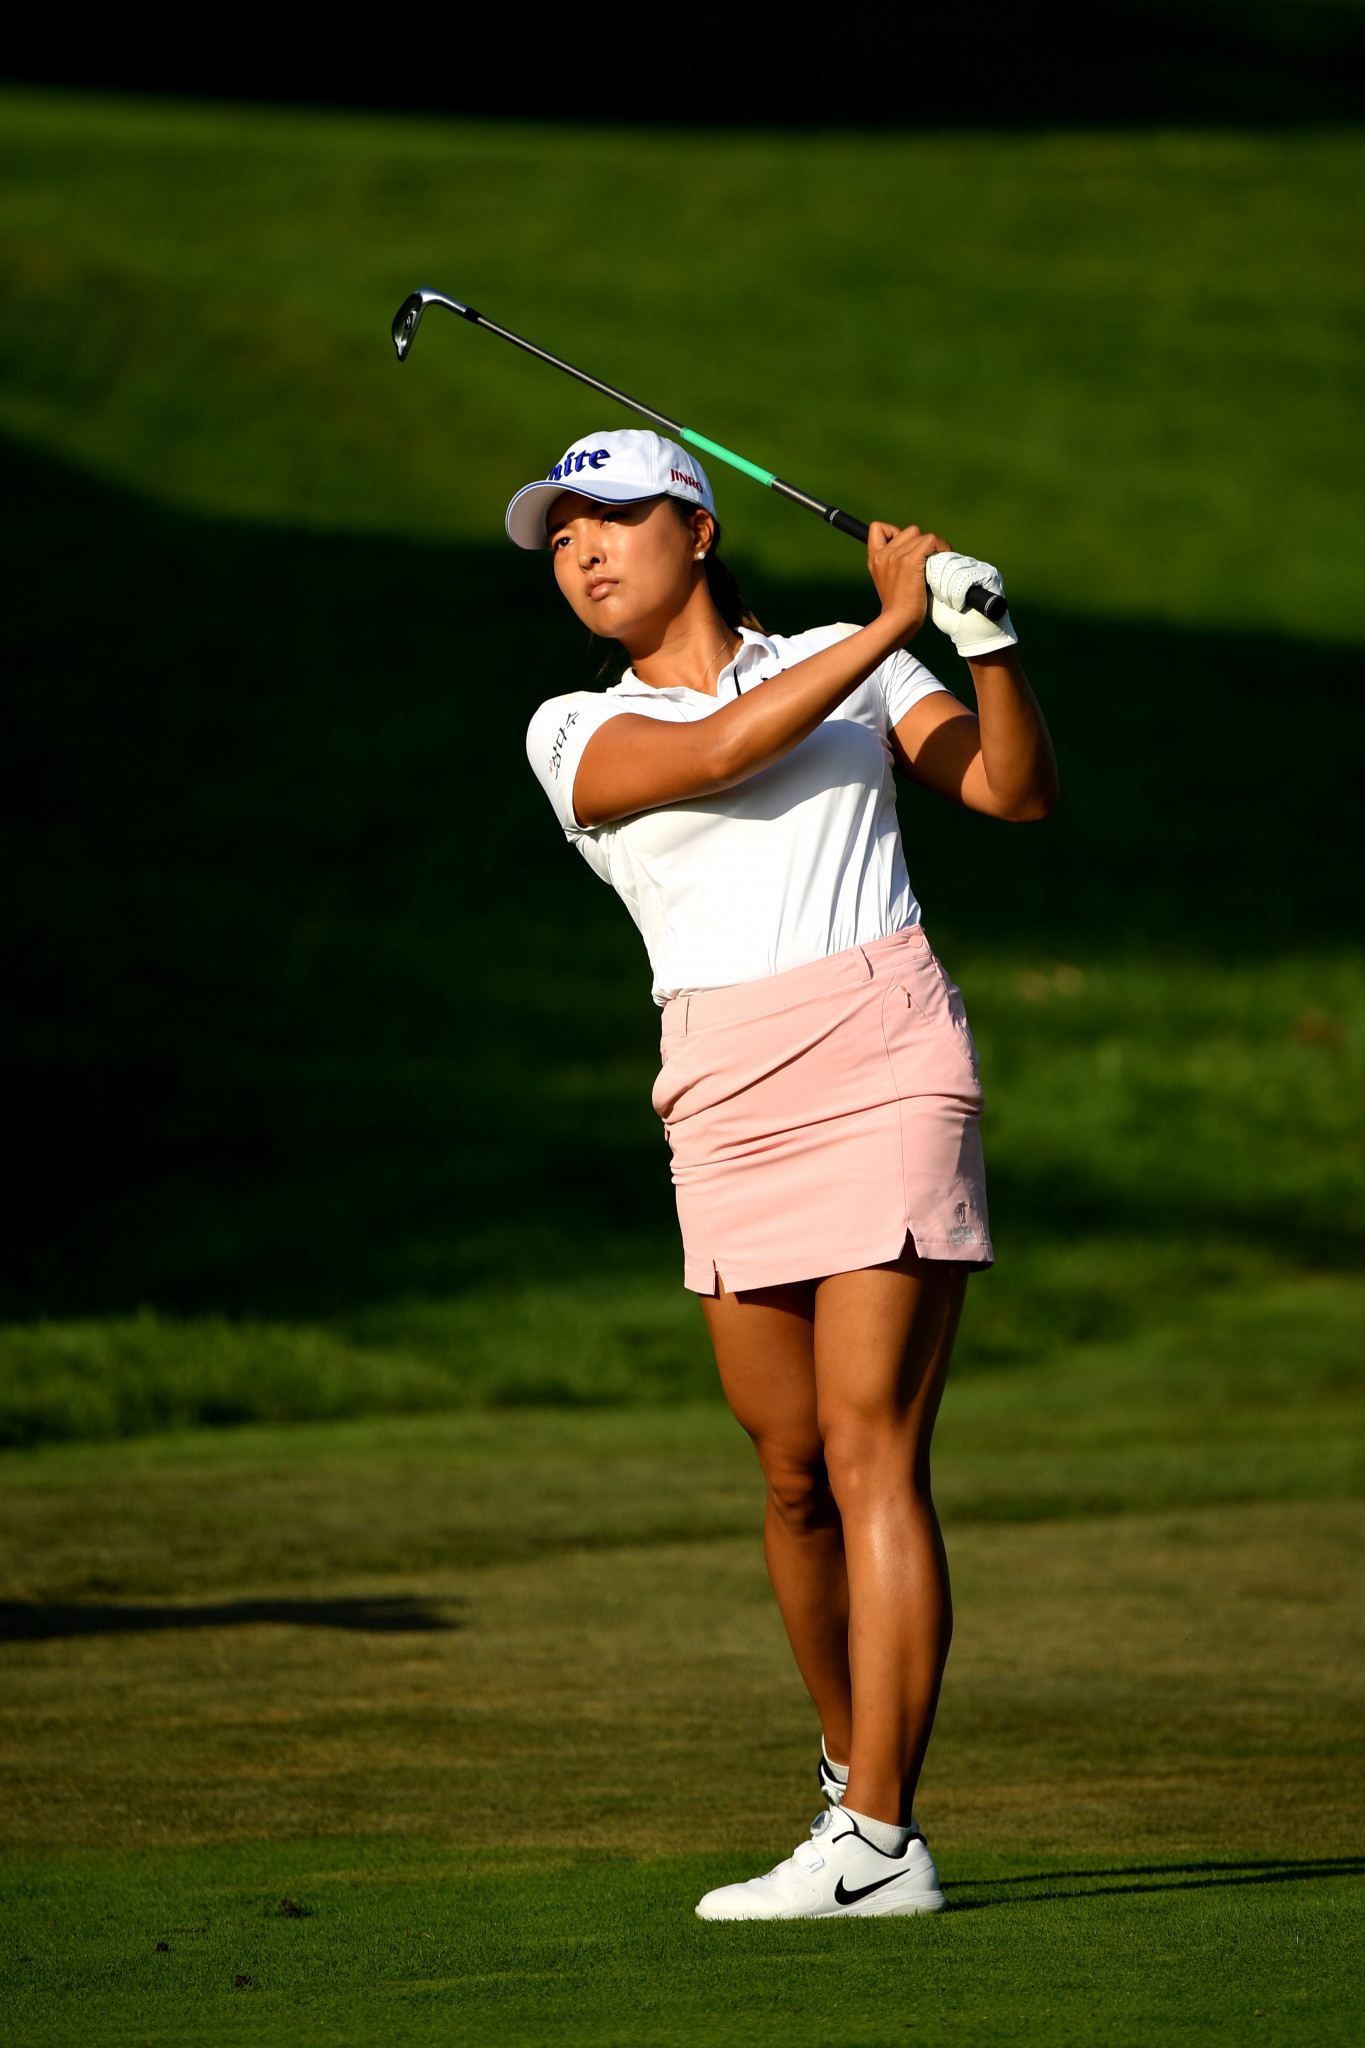 South Korea's world number two Ko Jin-young is one shot off the lead after today's first round of the Evian Championship in France, the fourth major on the women's tour ©Getty Images